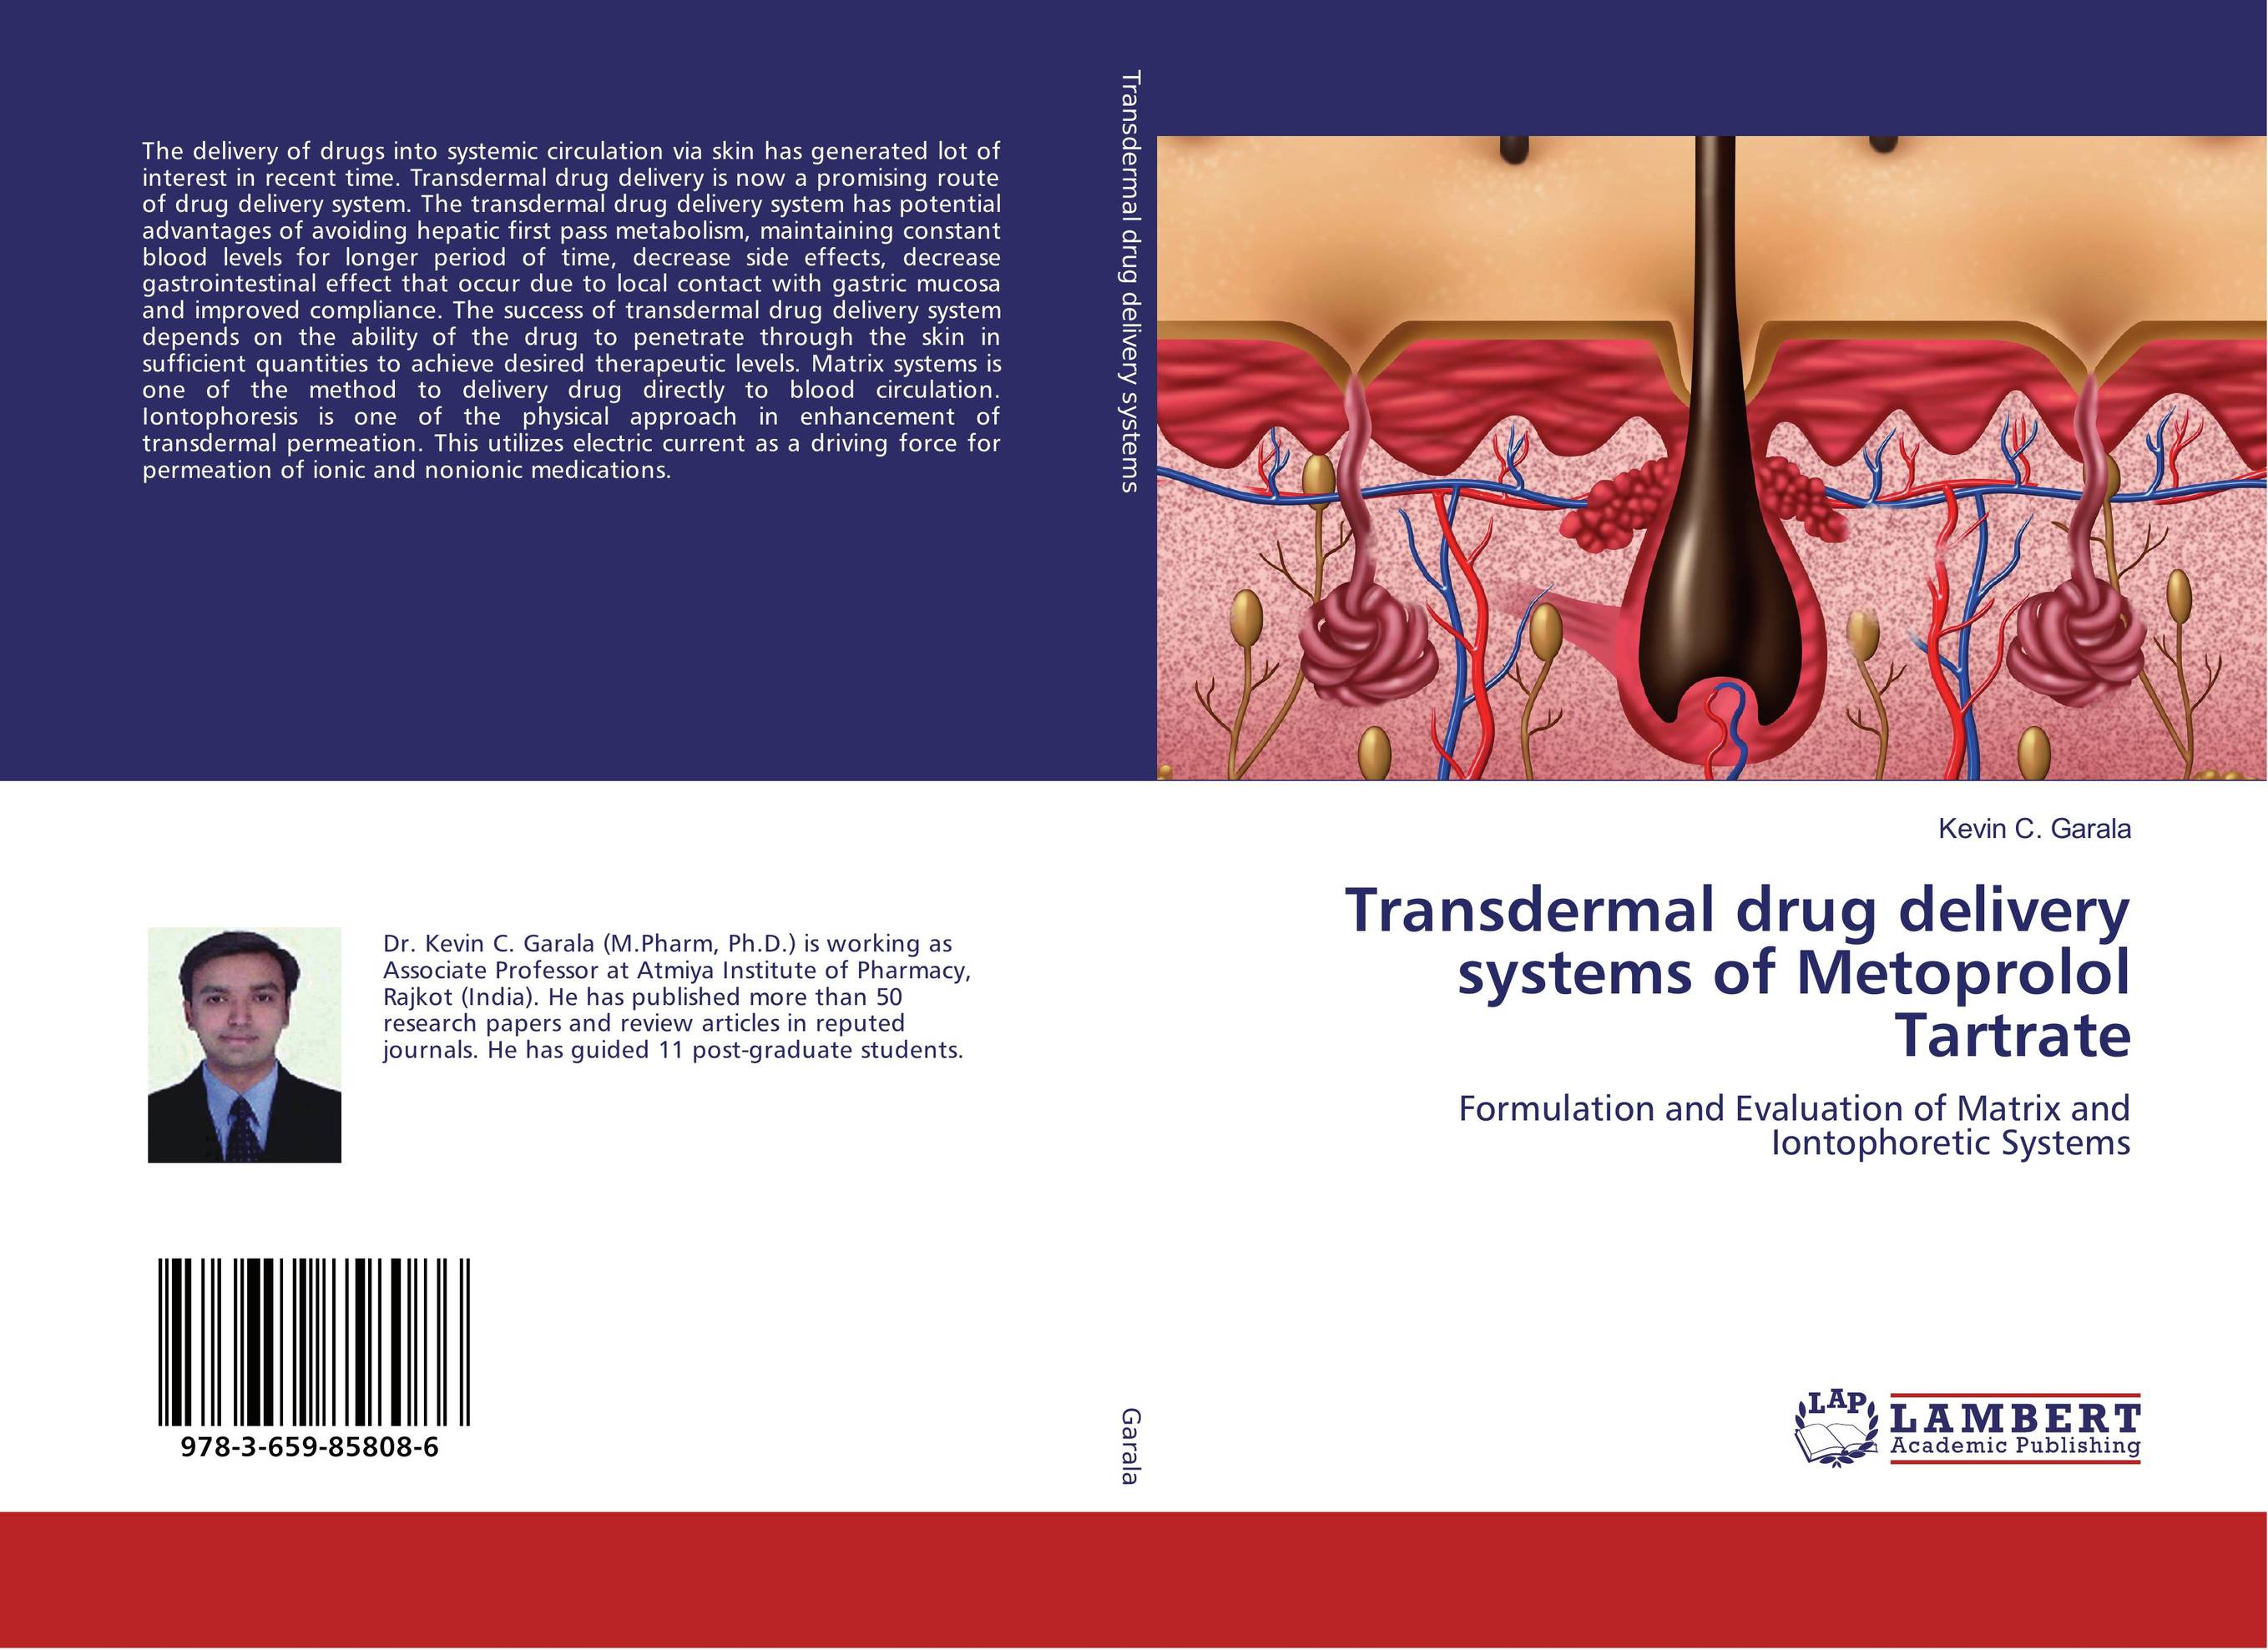 Transdermal drug delivery systems of Metoprolol Tartrate overview of drug utilization pattern in surgery